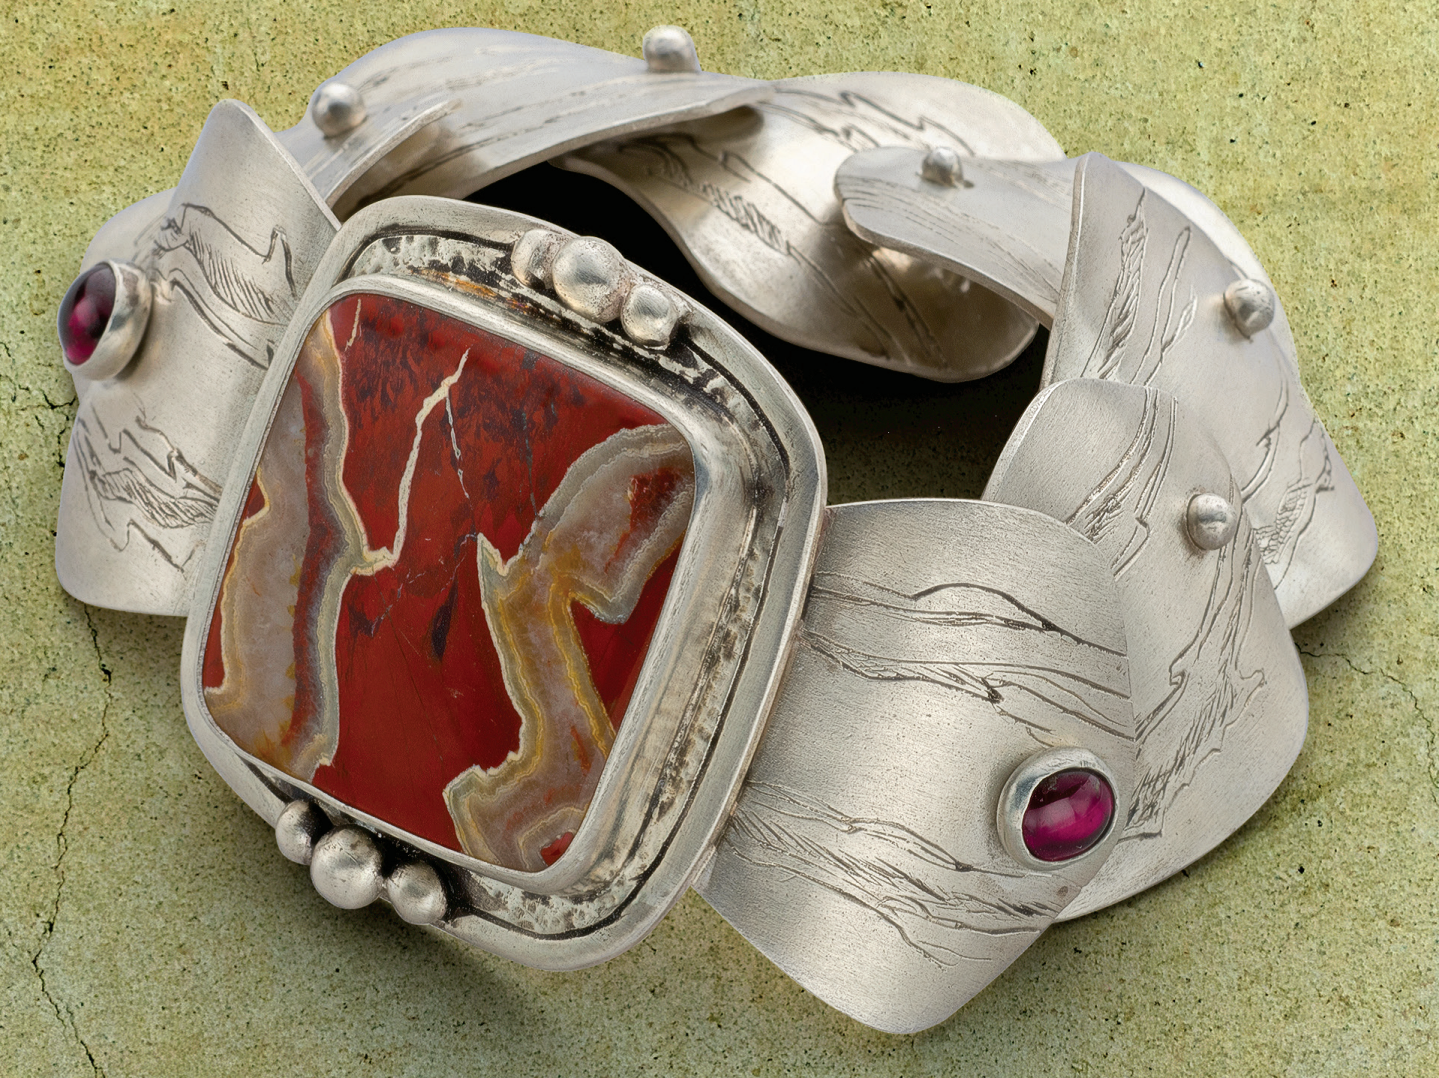 Classic crazy lace agate finds its way into contemporary jewelry such as Janet Alexander's Open & Close bracelet. The project appears in Lapidary Journal Jewelry Artist March/April 2018, in which this agate is also the featured Smokin' Stone. Photo: Jim Lawson